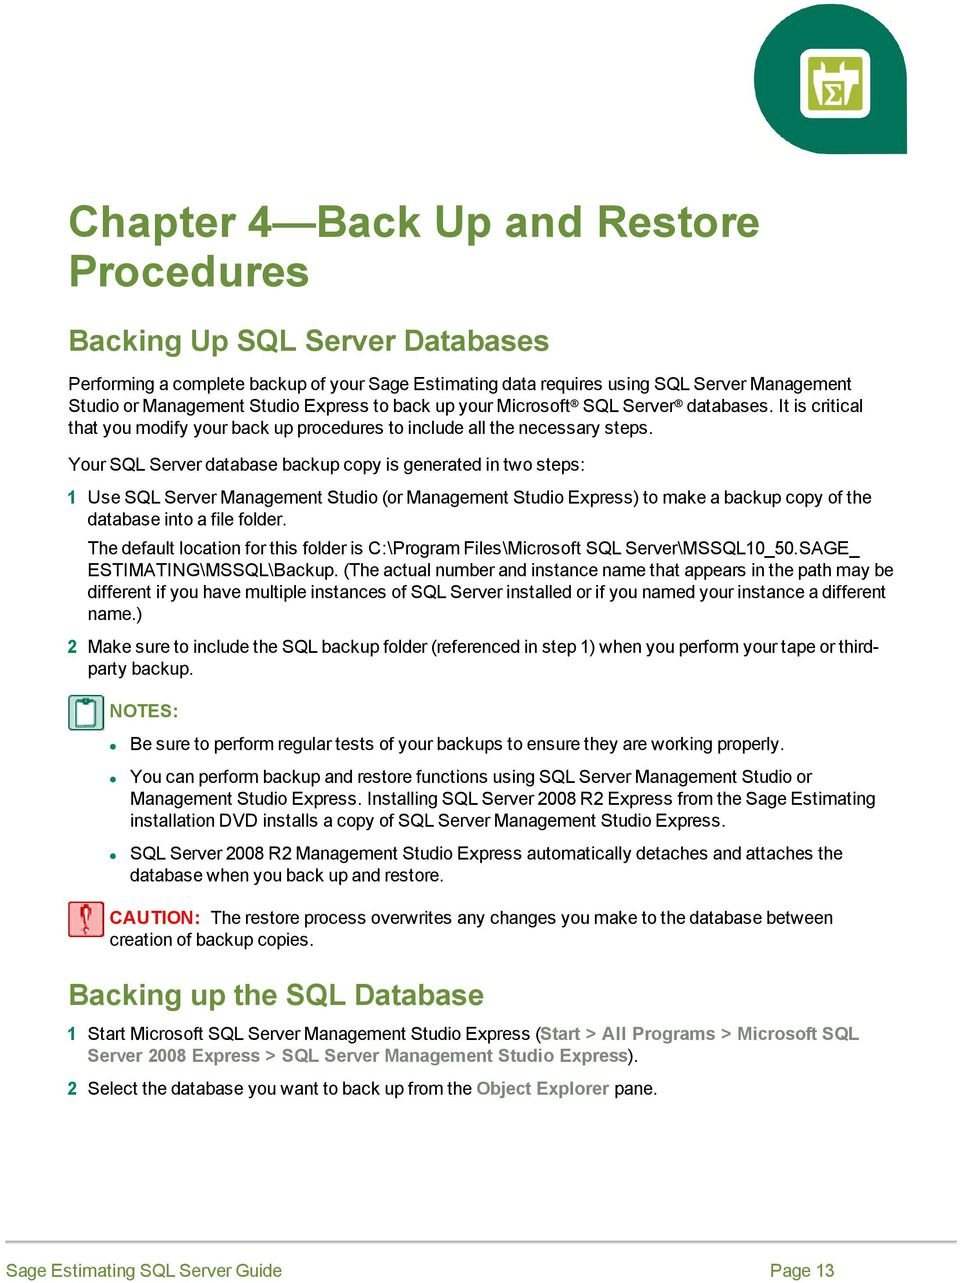 Your SQL Server database backup copy is generated in two steps: 1 Use SQL Server Management Studio (or Management Studio Express) to make a backup copy of the database into a file folder.